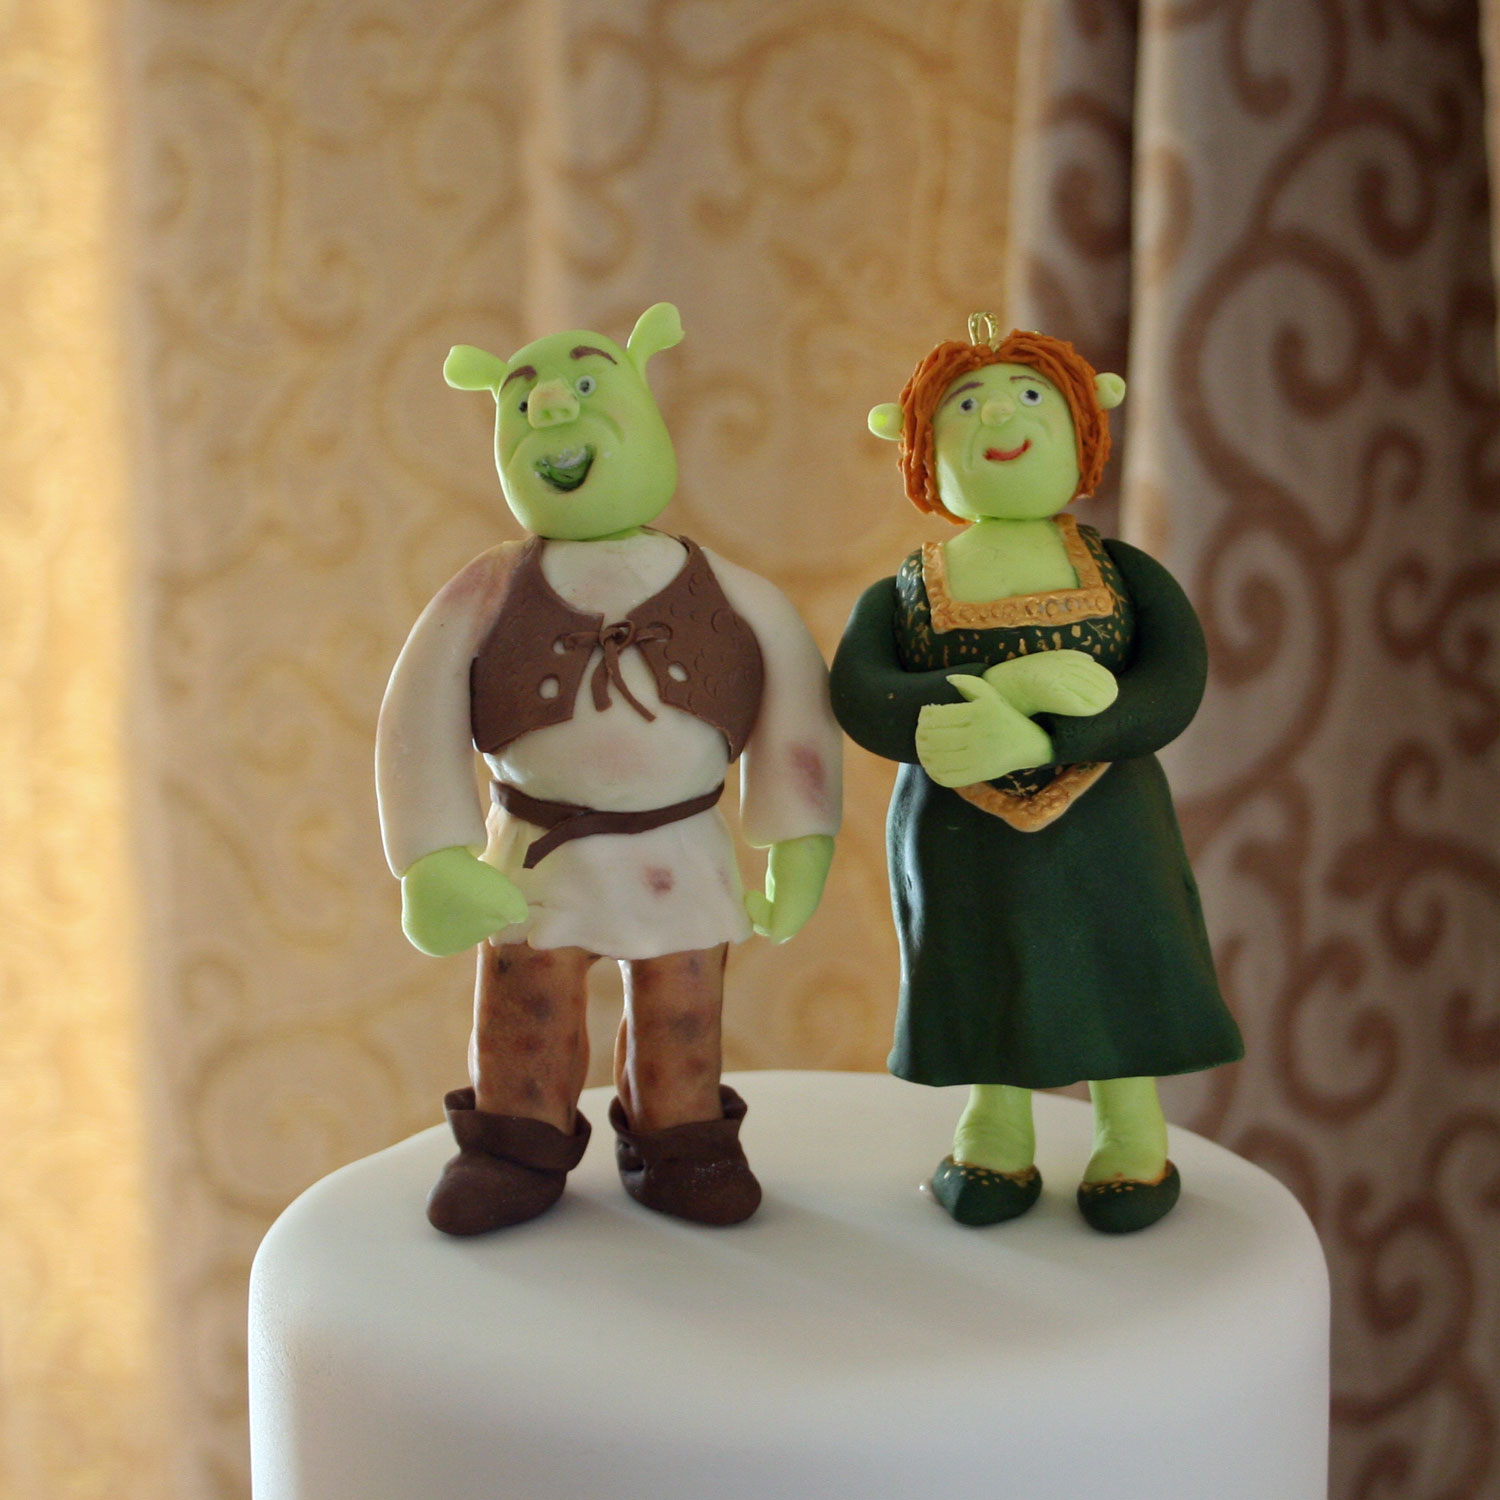 Shrek and Fiona Cake Toppers